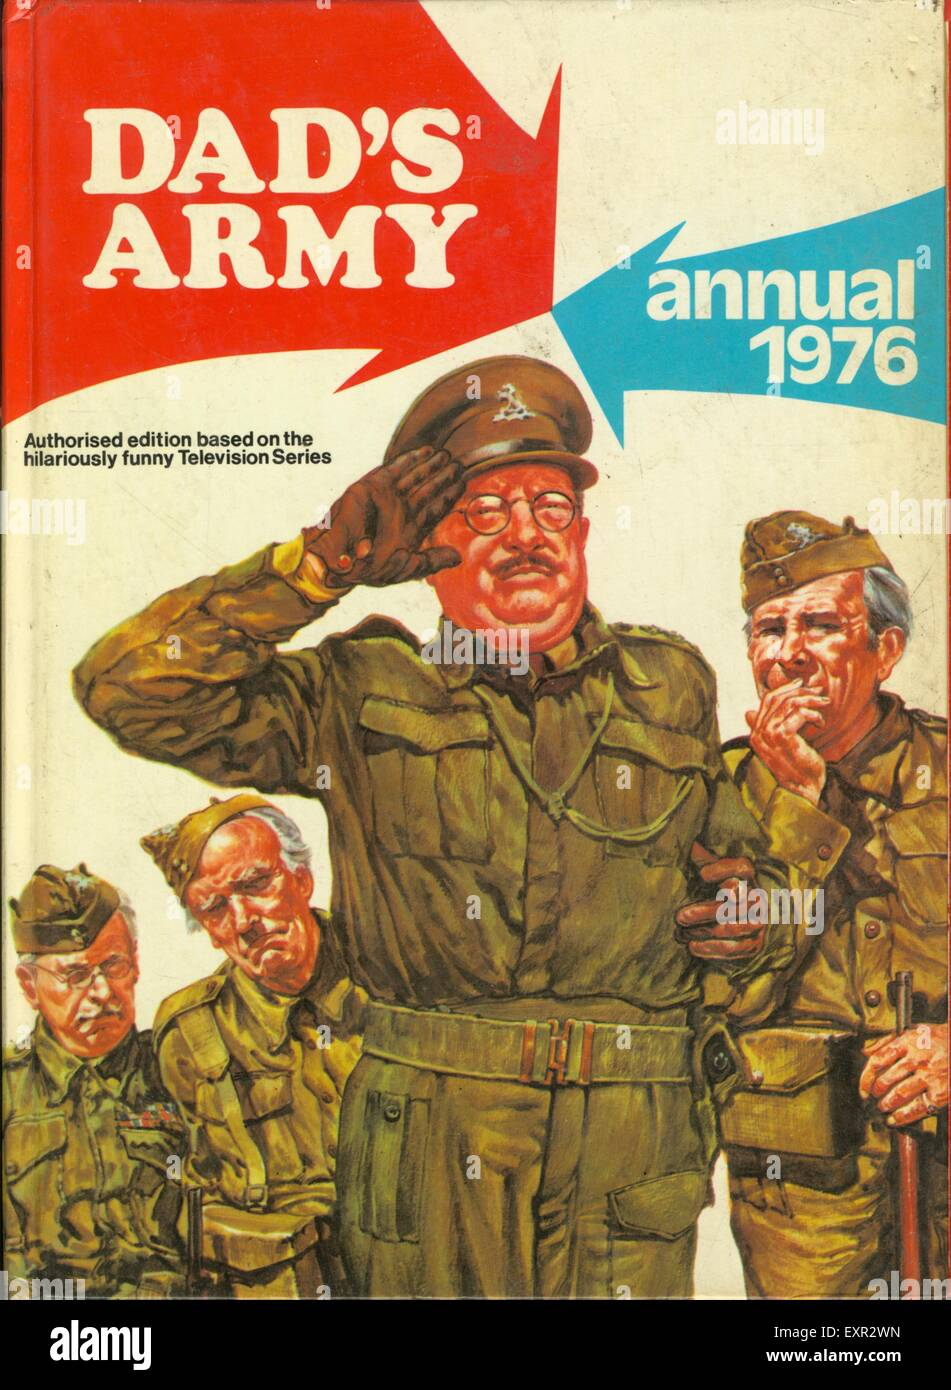 1970s UK Dad's Army  WW2 Comic/ Annual Cover - Stock Image